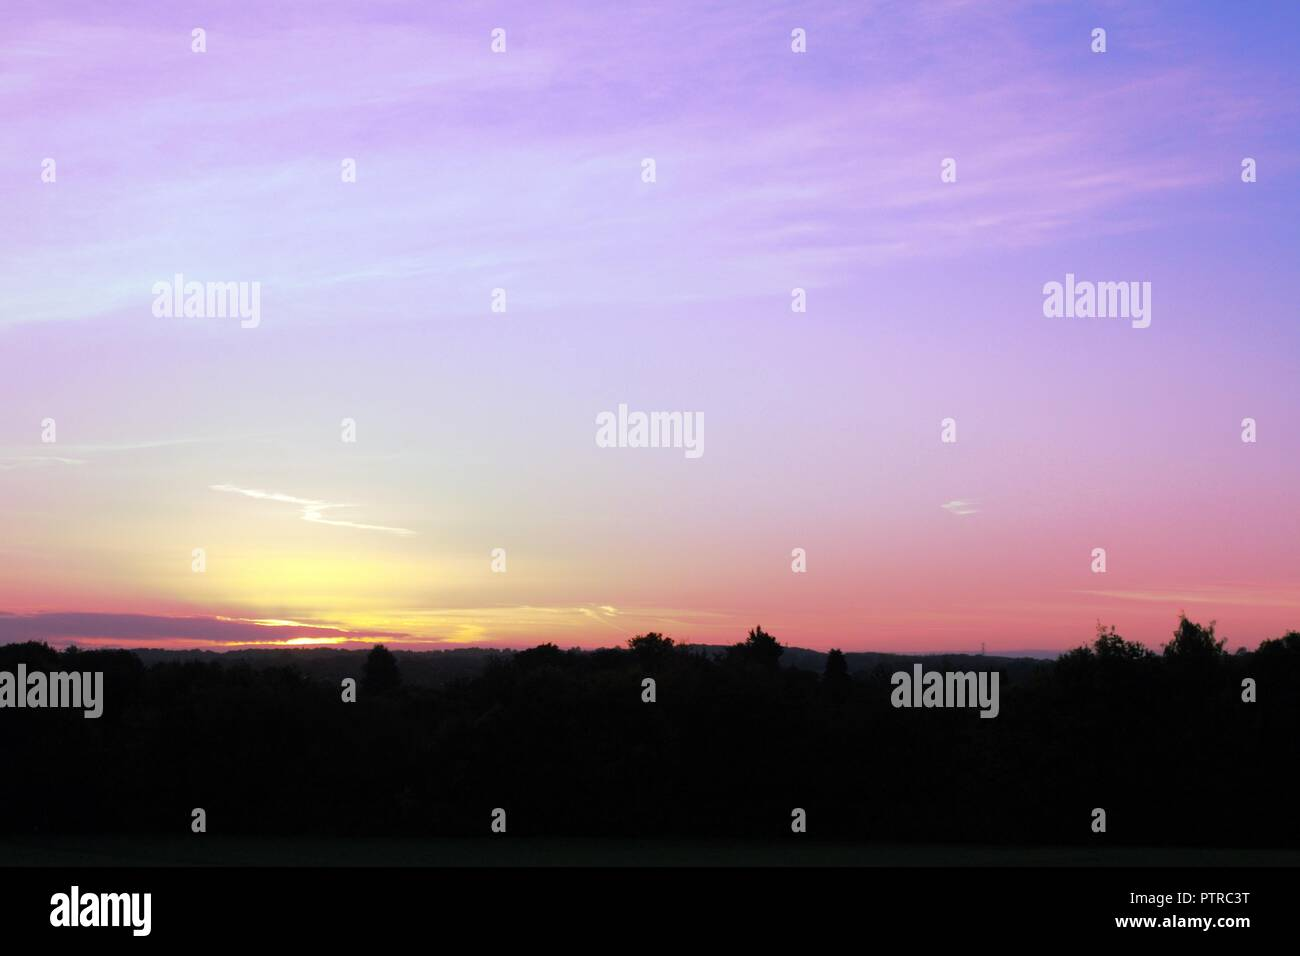 Sun Rising over silhouetted tree lined horizon - Stock Image